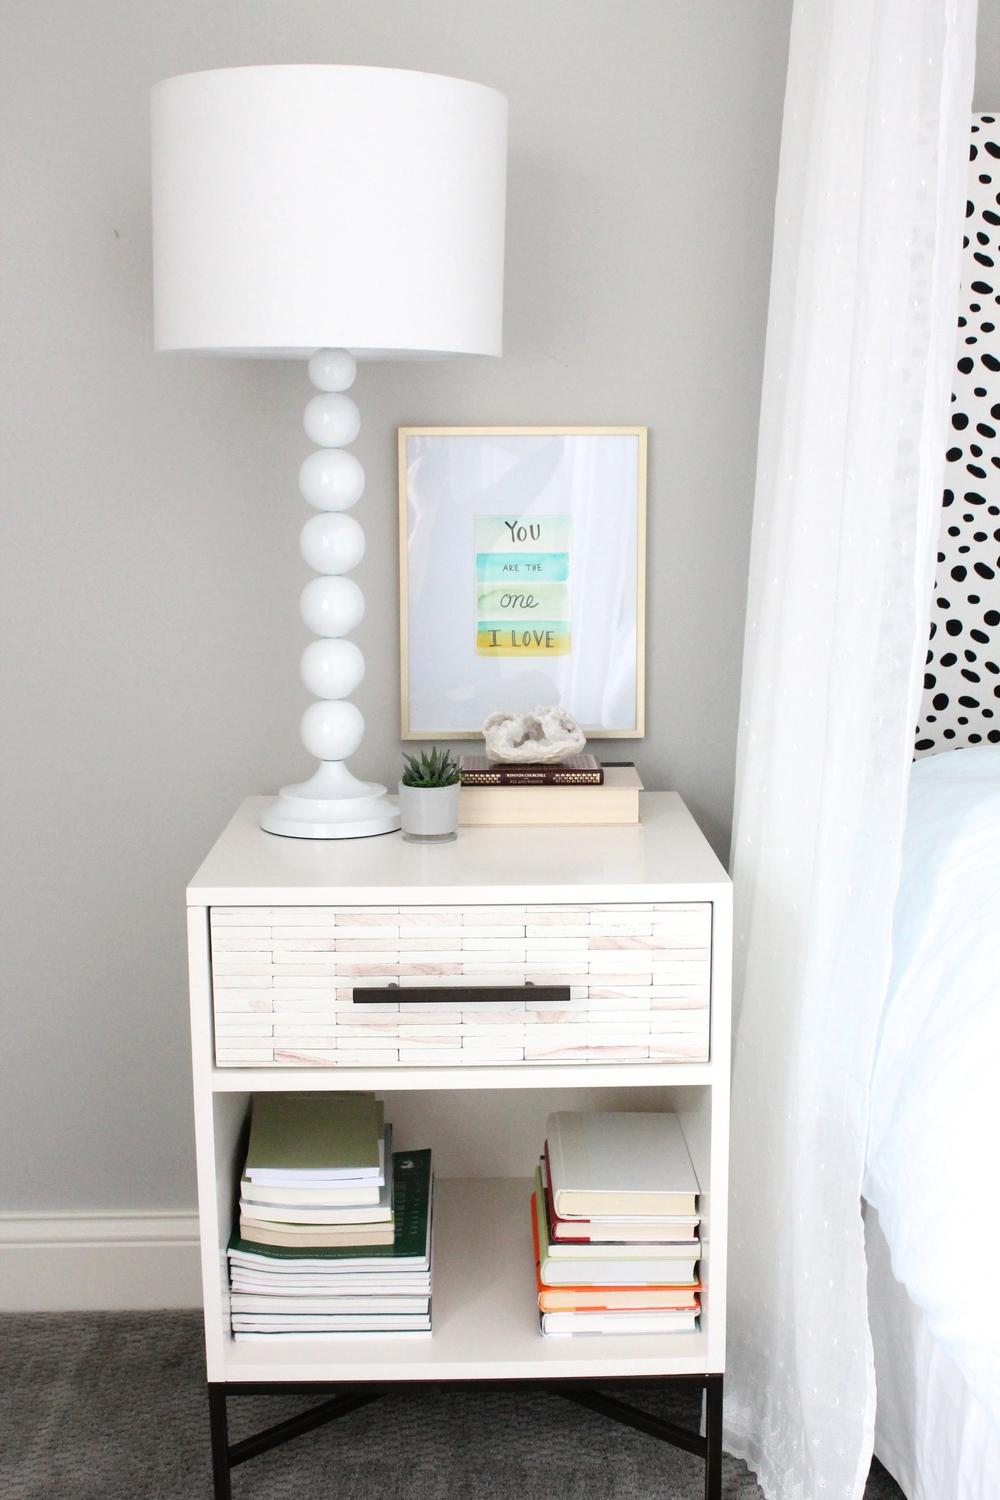 West Elm Nightstand with watercolor artwork in a gold frame. Lovely master bedroom.